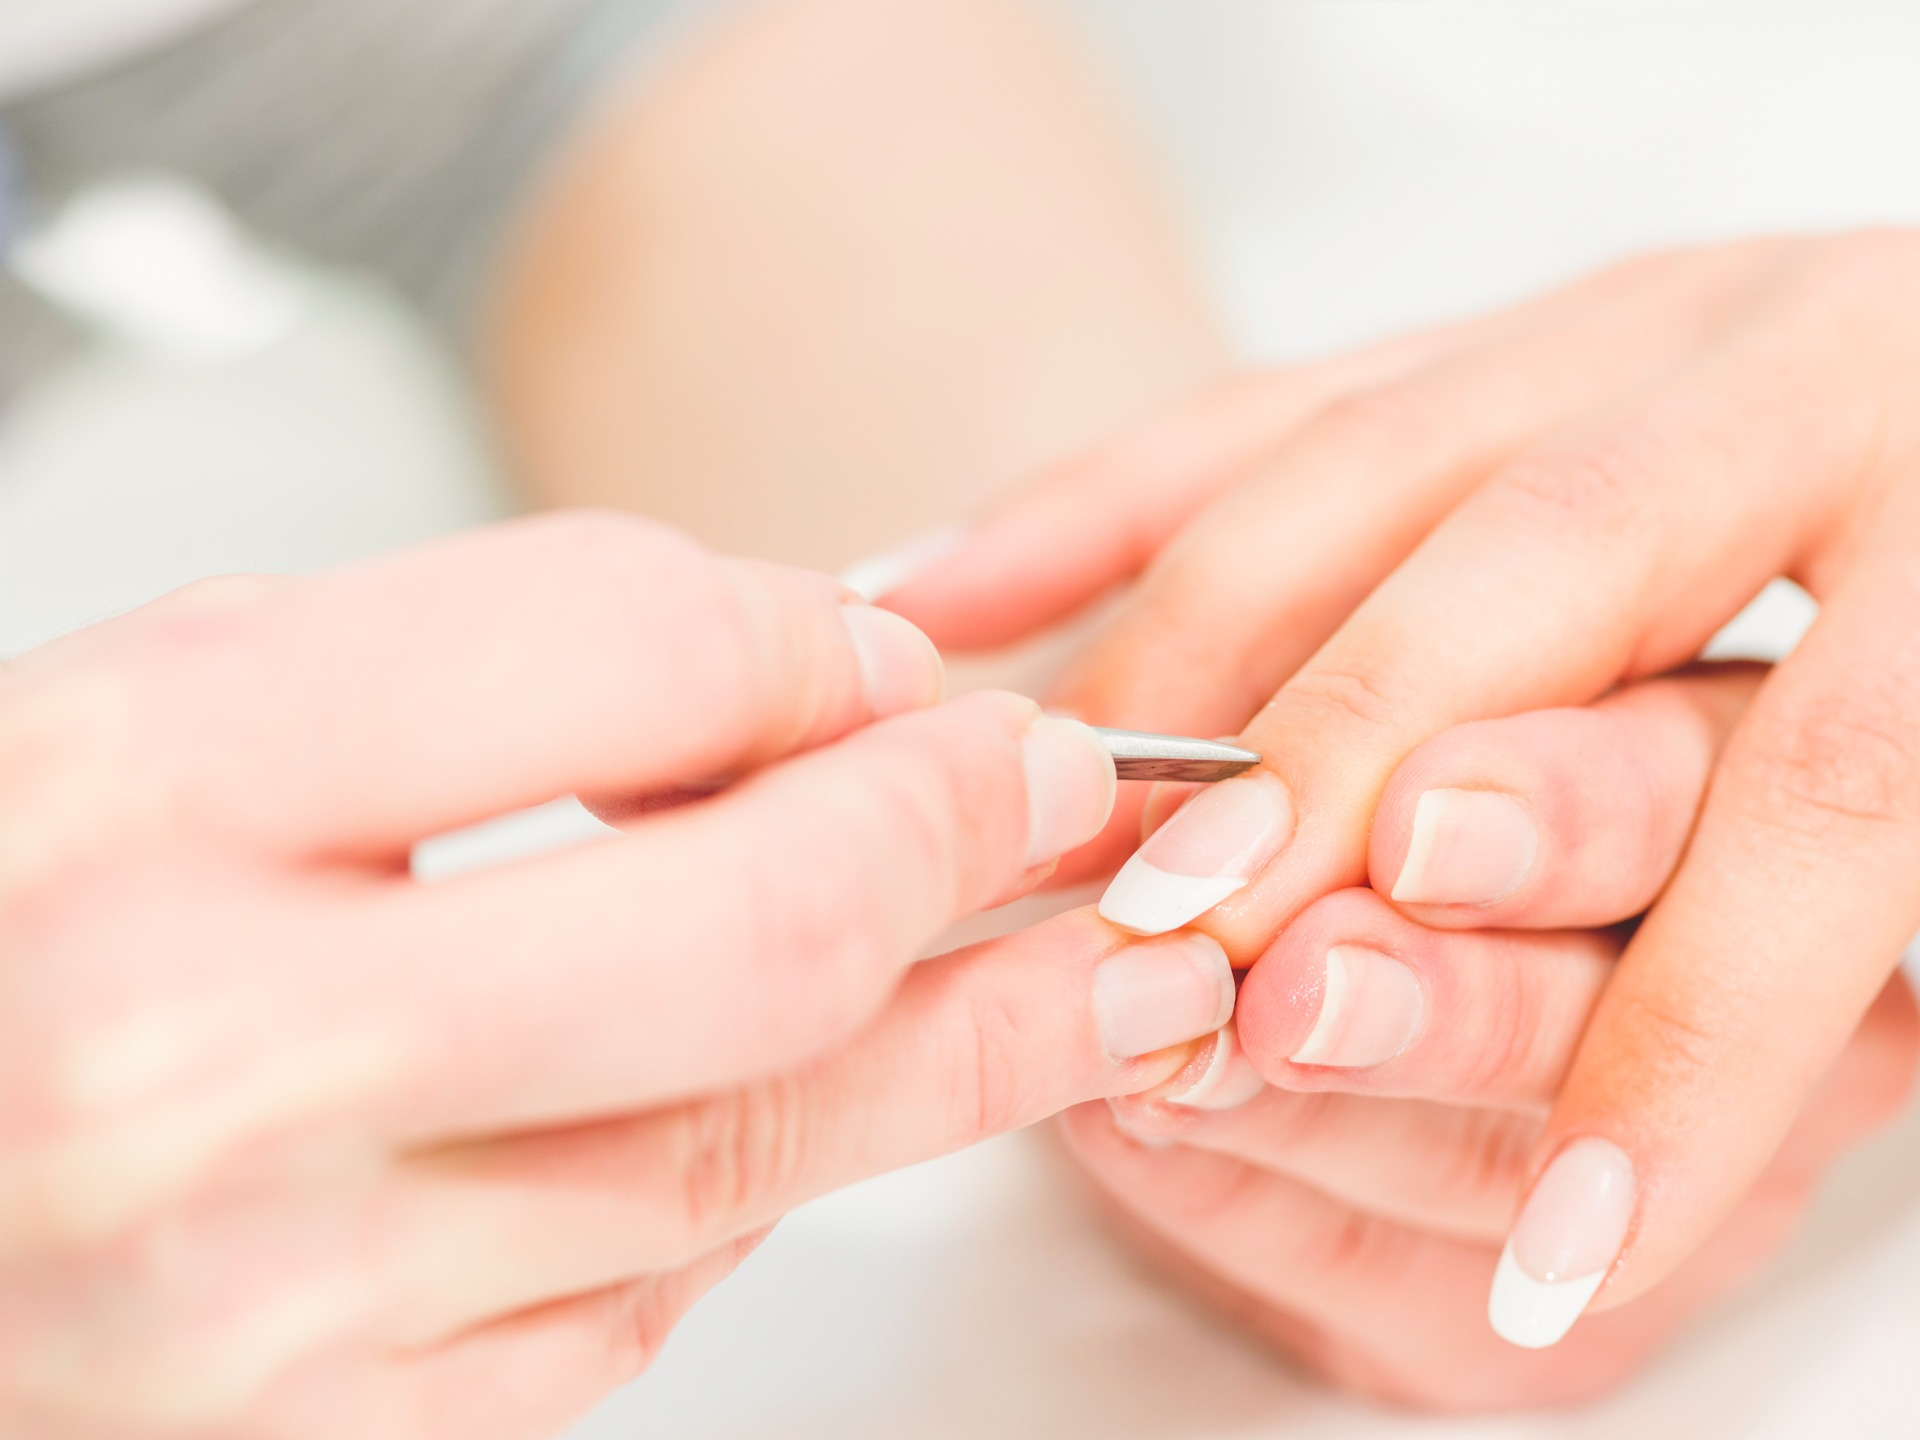 manicuring hands - pushing cuticles